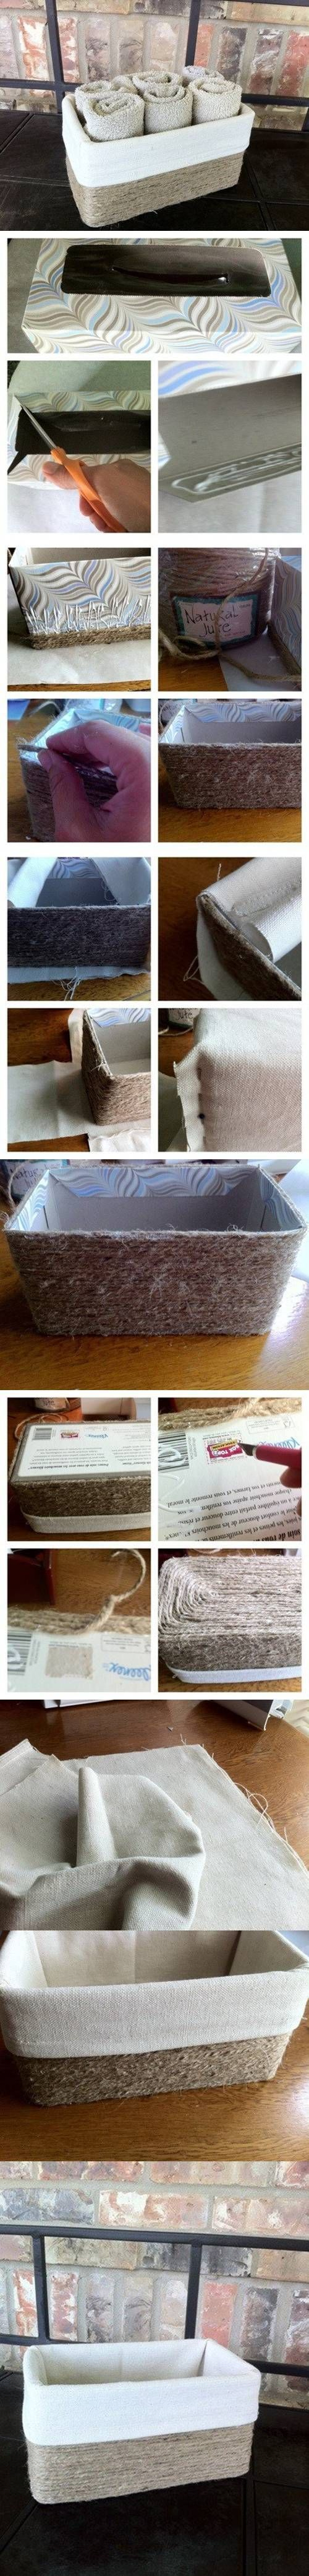 DIY Jute Basket from Cardboard Box